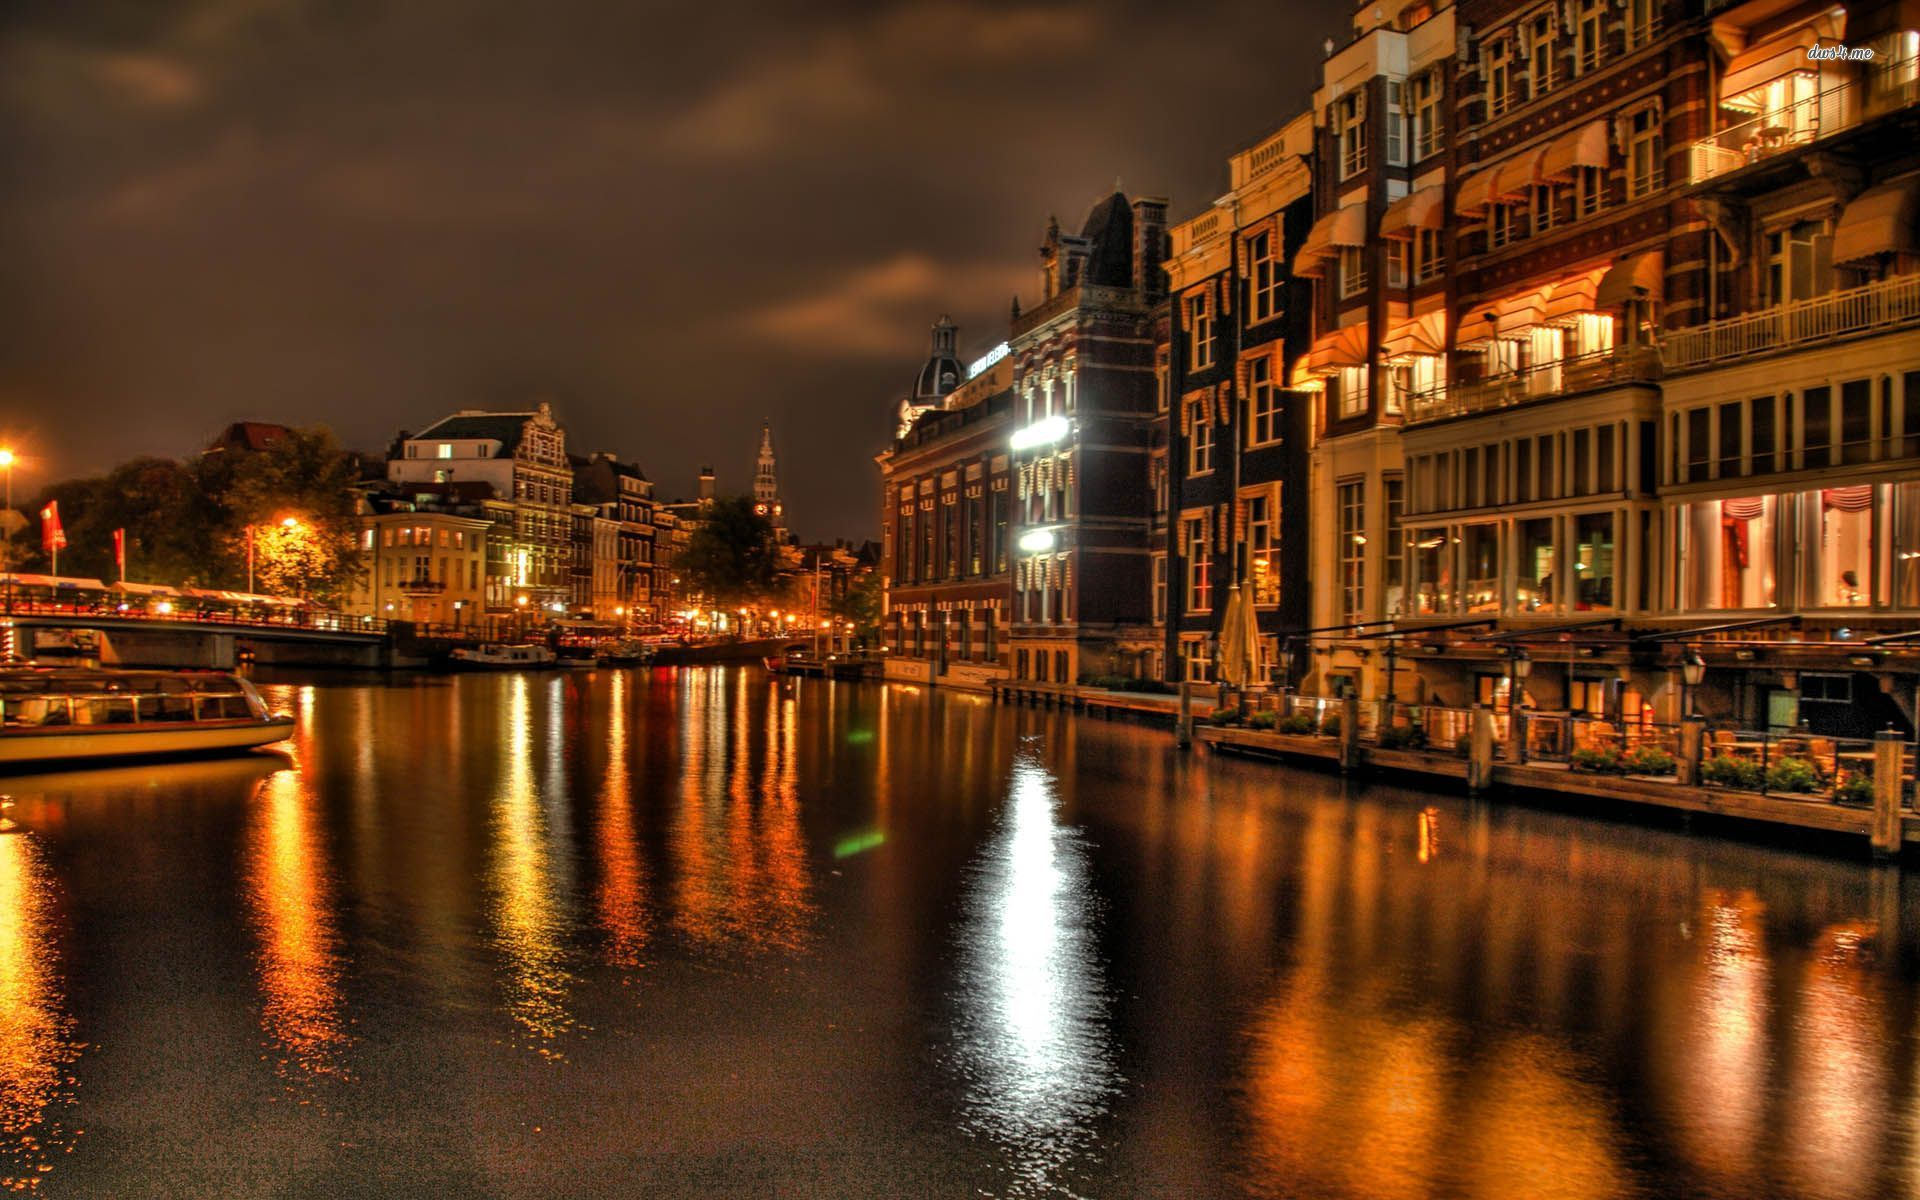 Venice Streets At Night HD Wallpaper Background Images 1920x1200